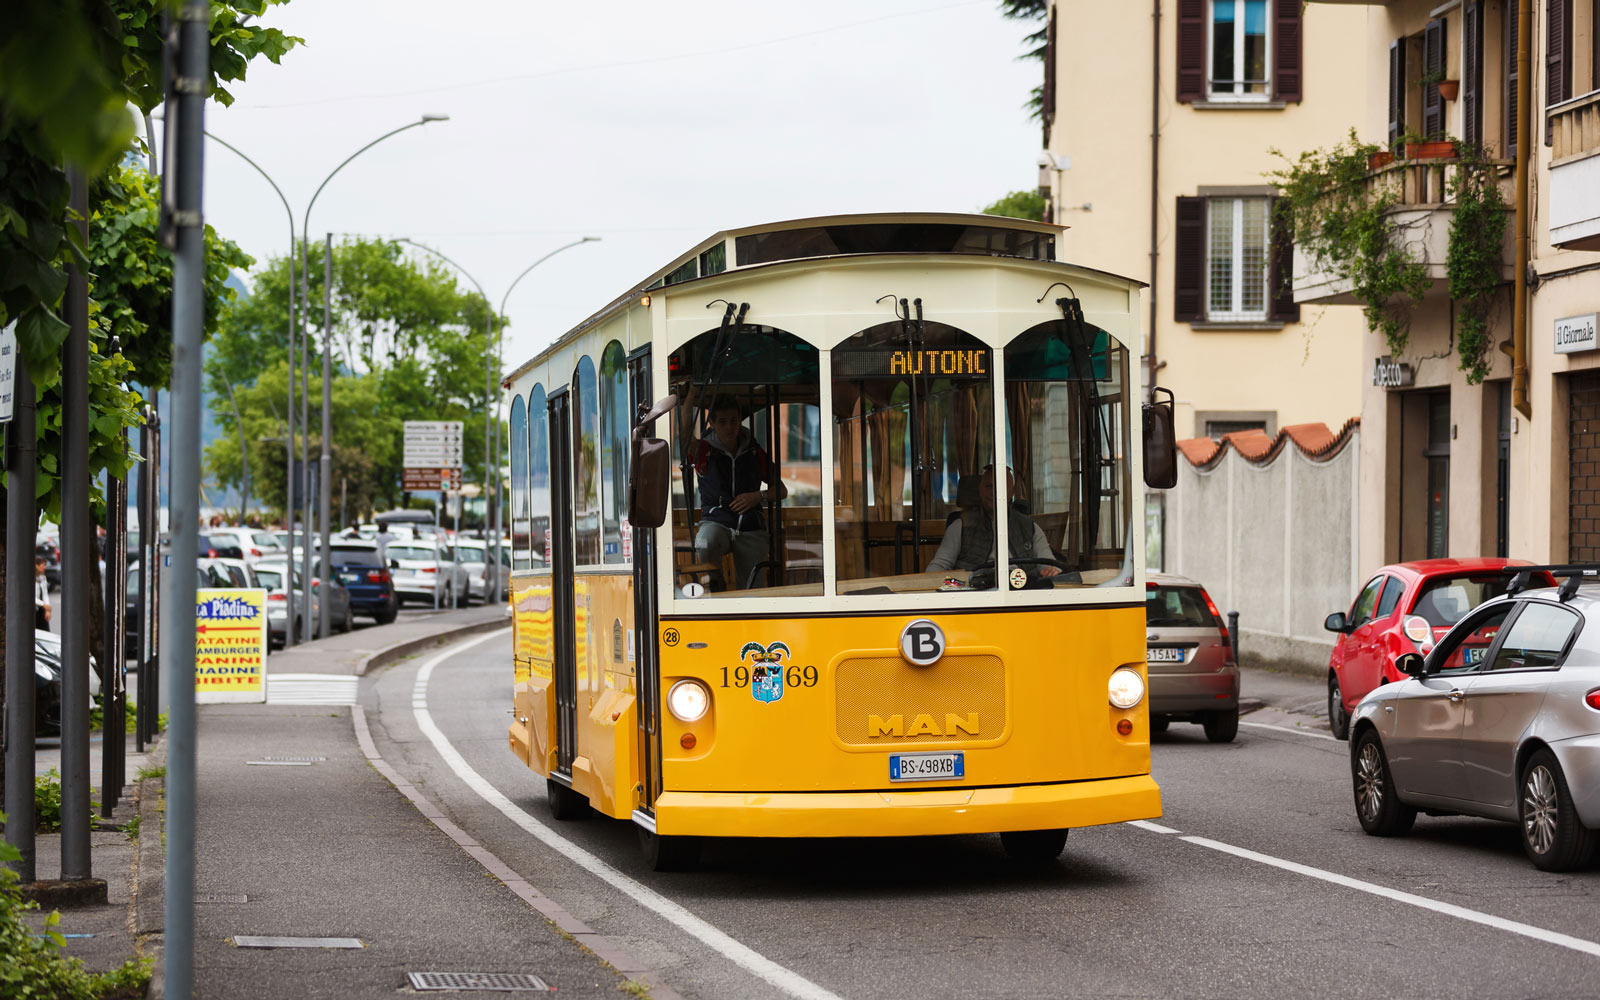 A trolley in Loevere, Italy